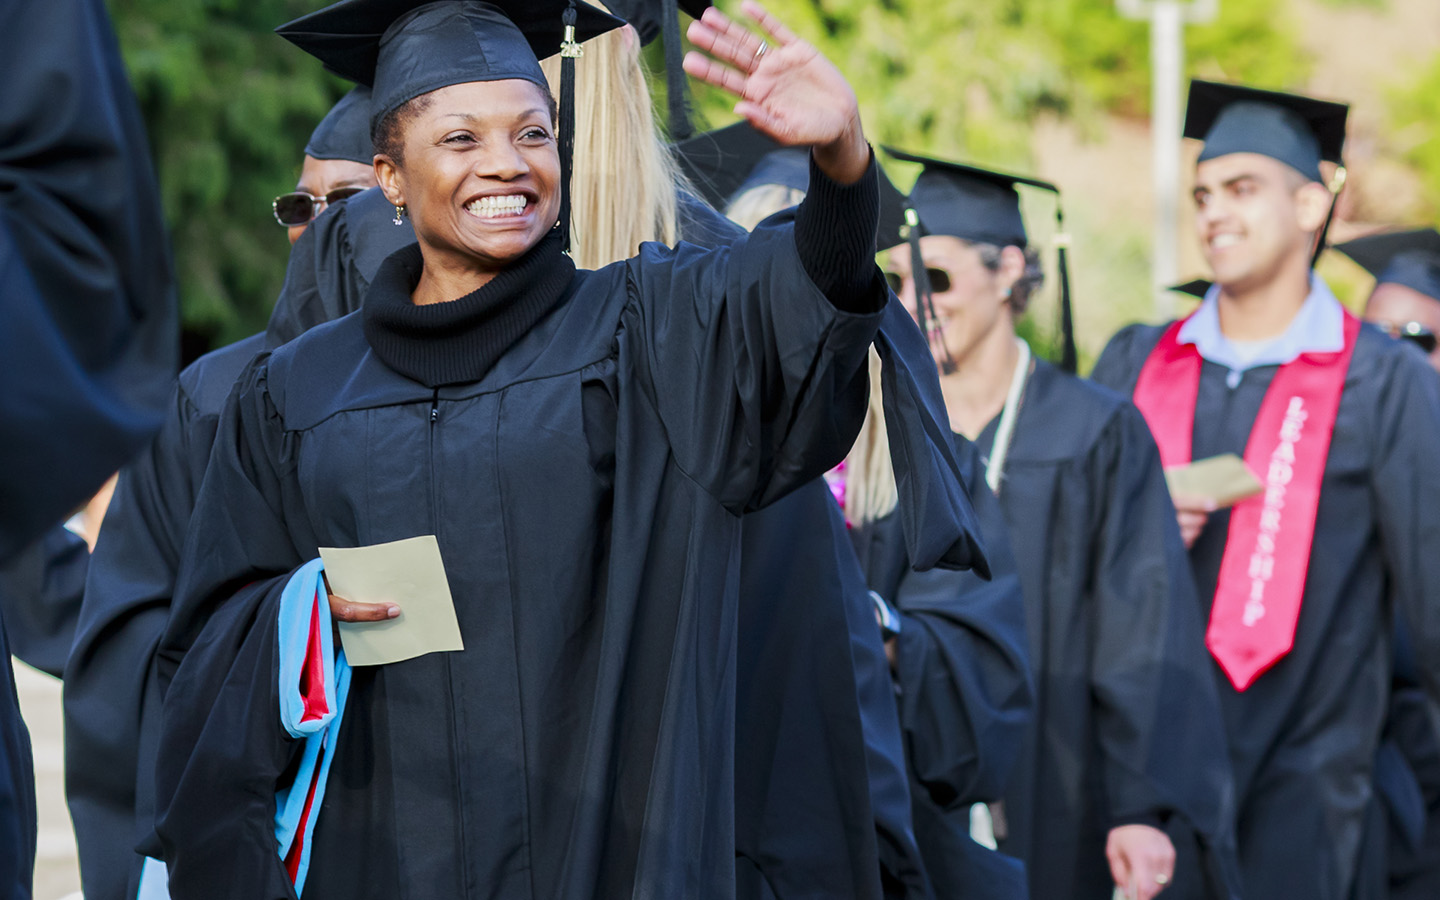 Professors and students walking in line for HNU graduation ceremony